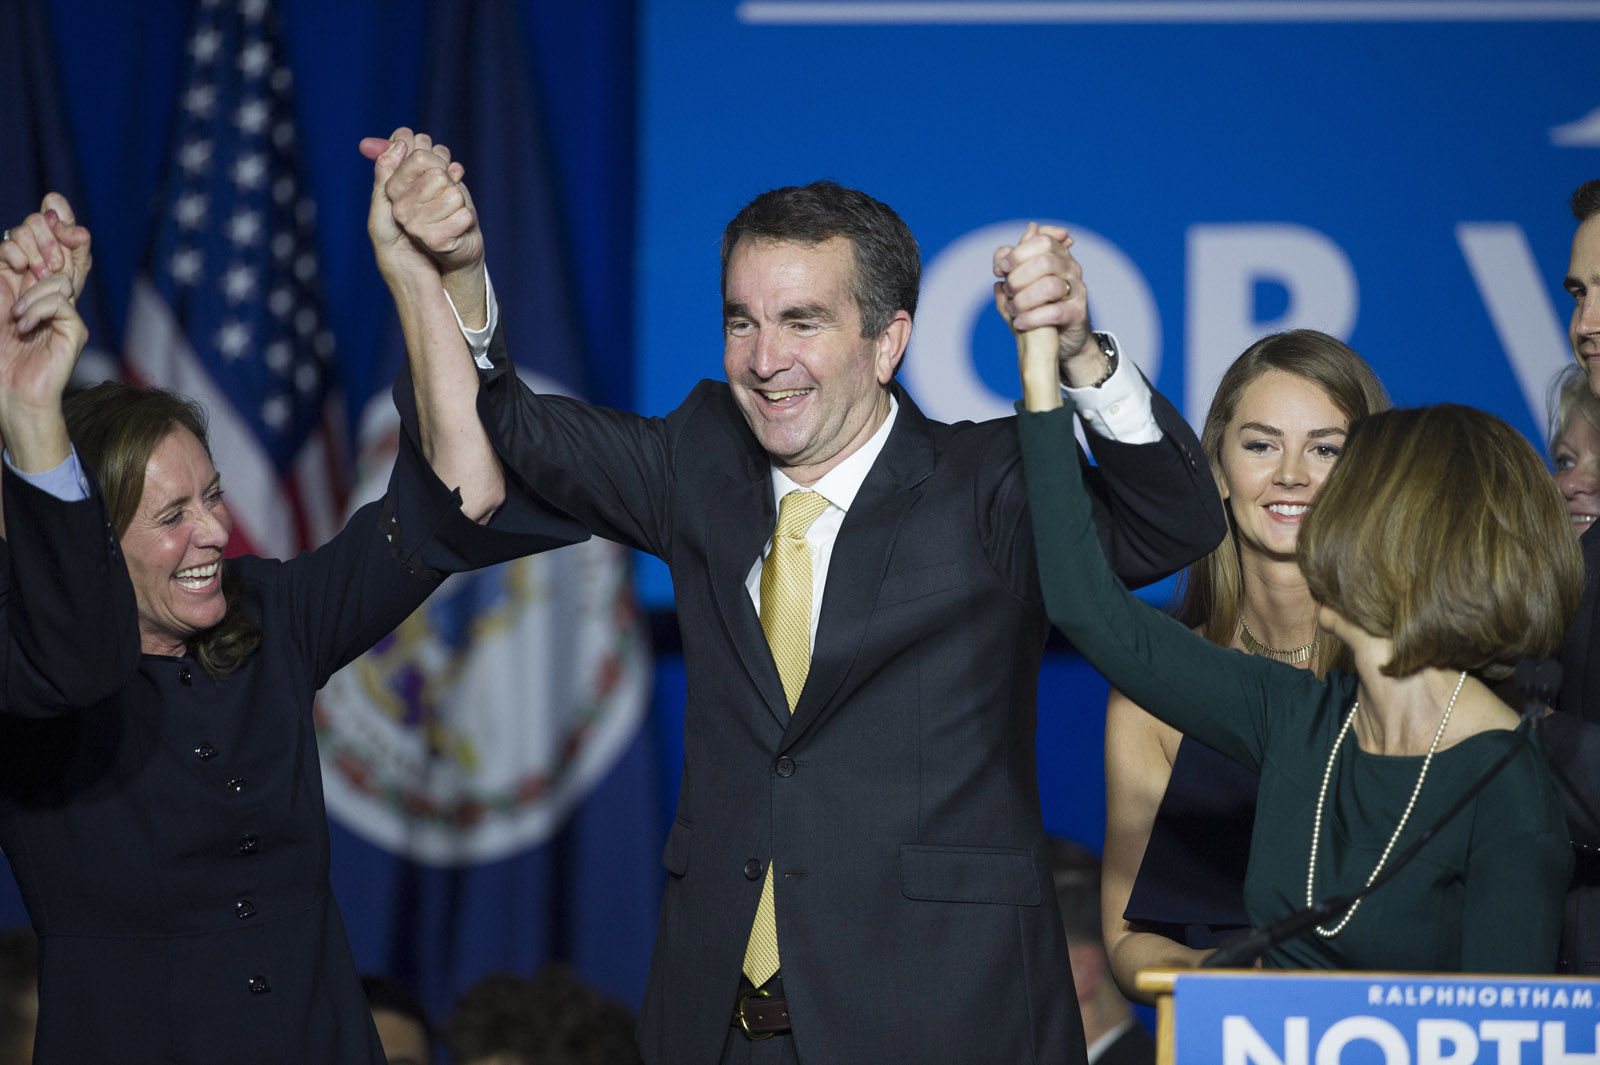 Virginia Gov.-elect Ralph Northam celebrates his election victory with his wife Pam and daughter Aubrey, right, and Dorothy McAuliffe, wife of Virginia Gov. Terry McAuliffe at the Northam For Governor election night party at George Mason University in Fairfax, Va., Tuesday, Nov. 7, 2017. (AP Photo/Cliff Owen)